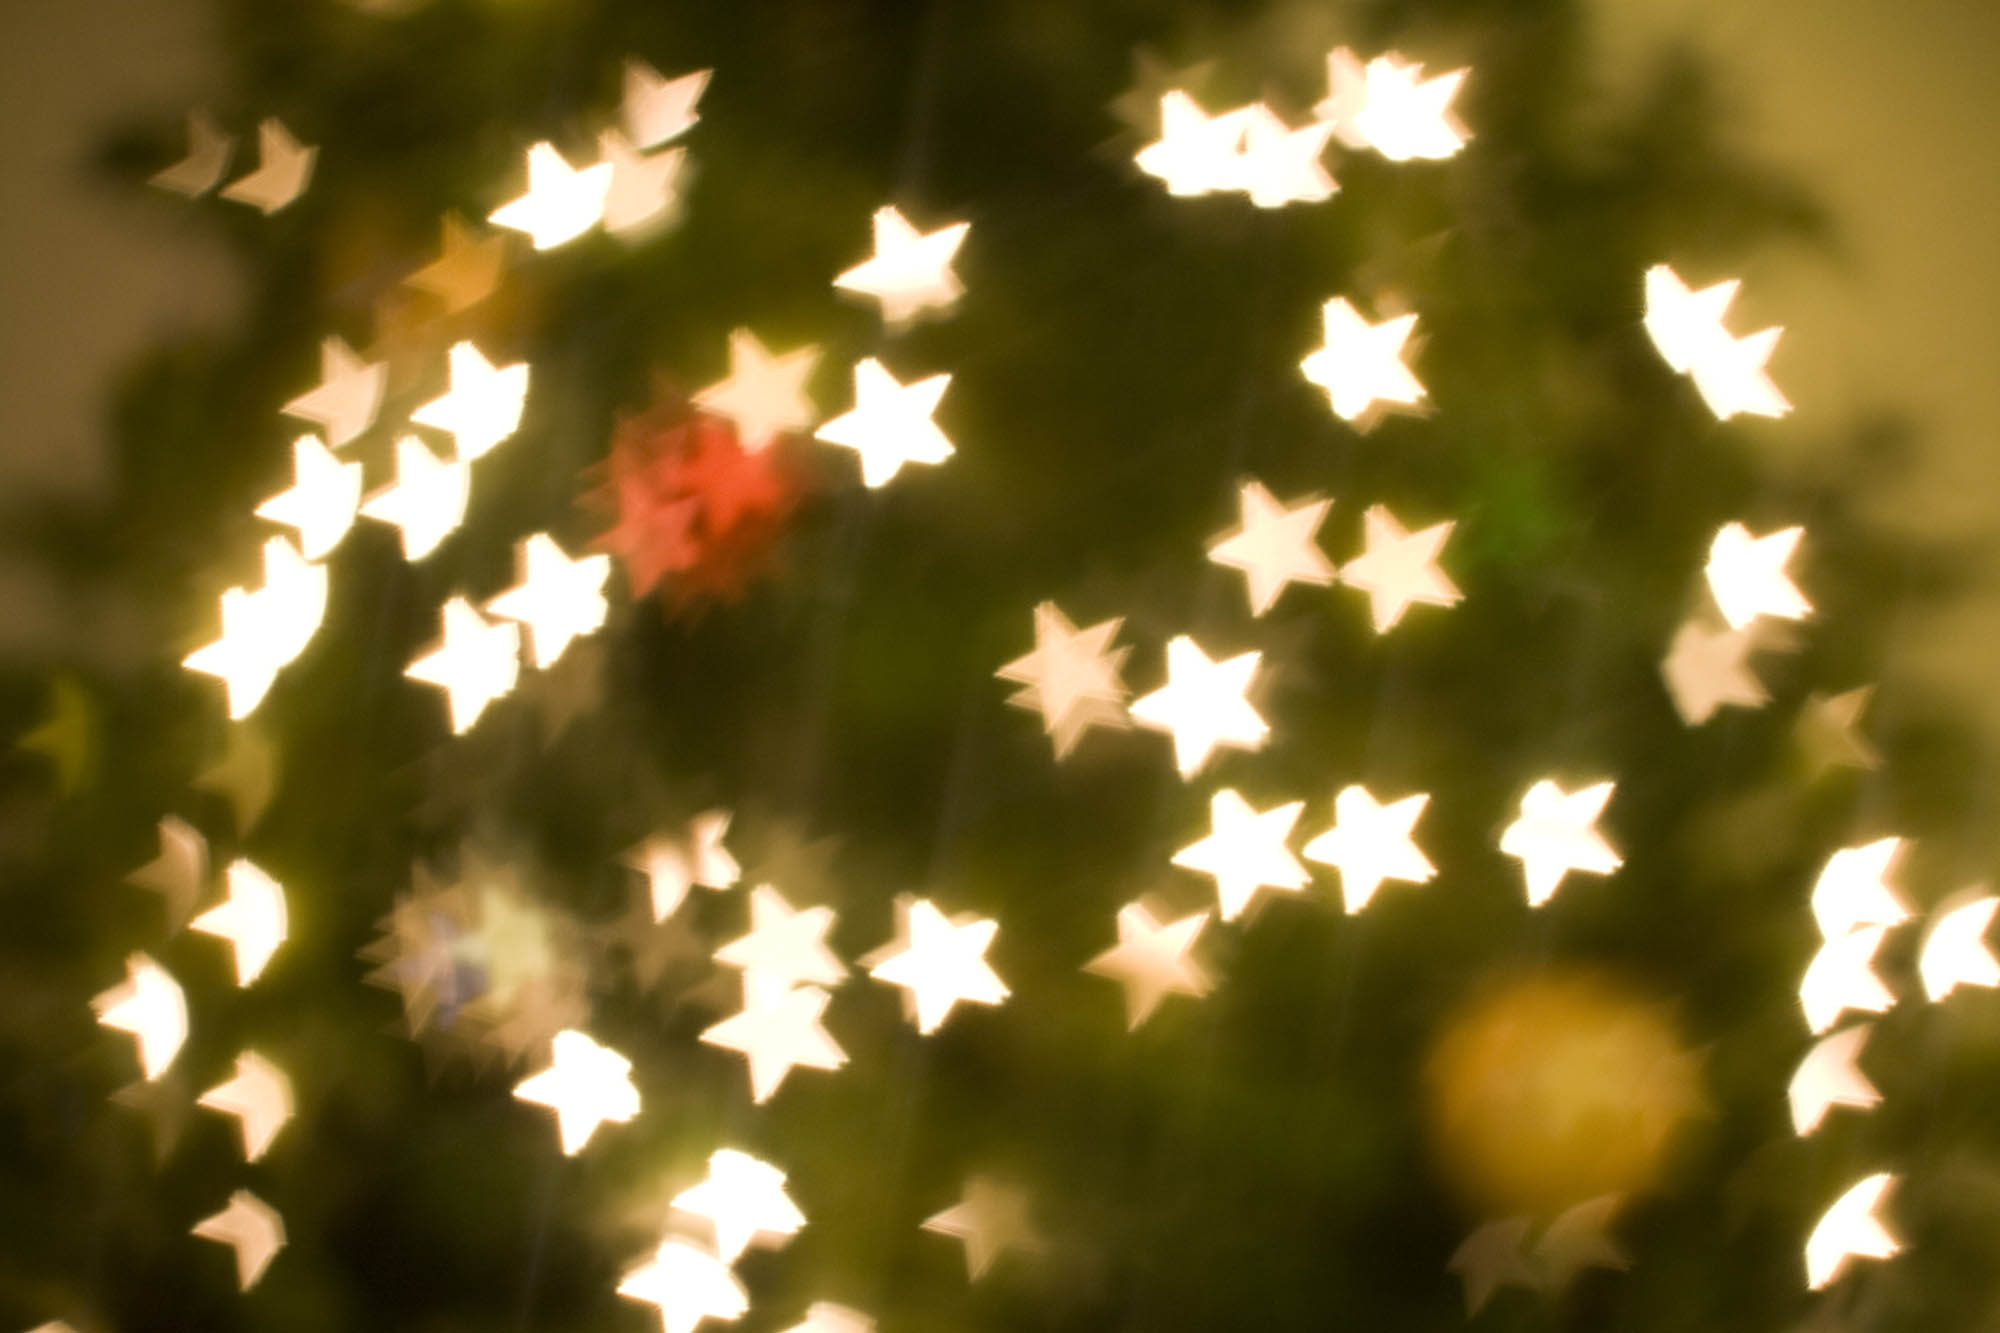 Christmas tree photos with a homemade bokeh star lens